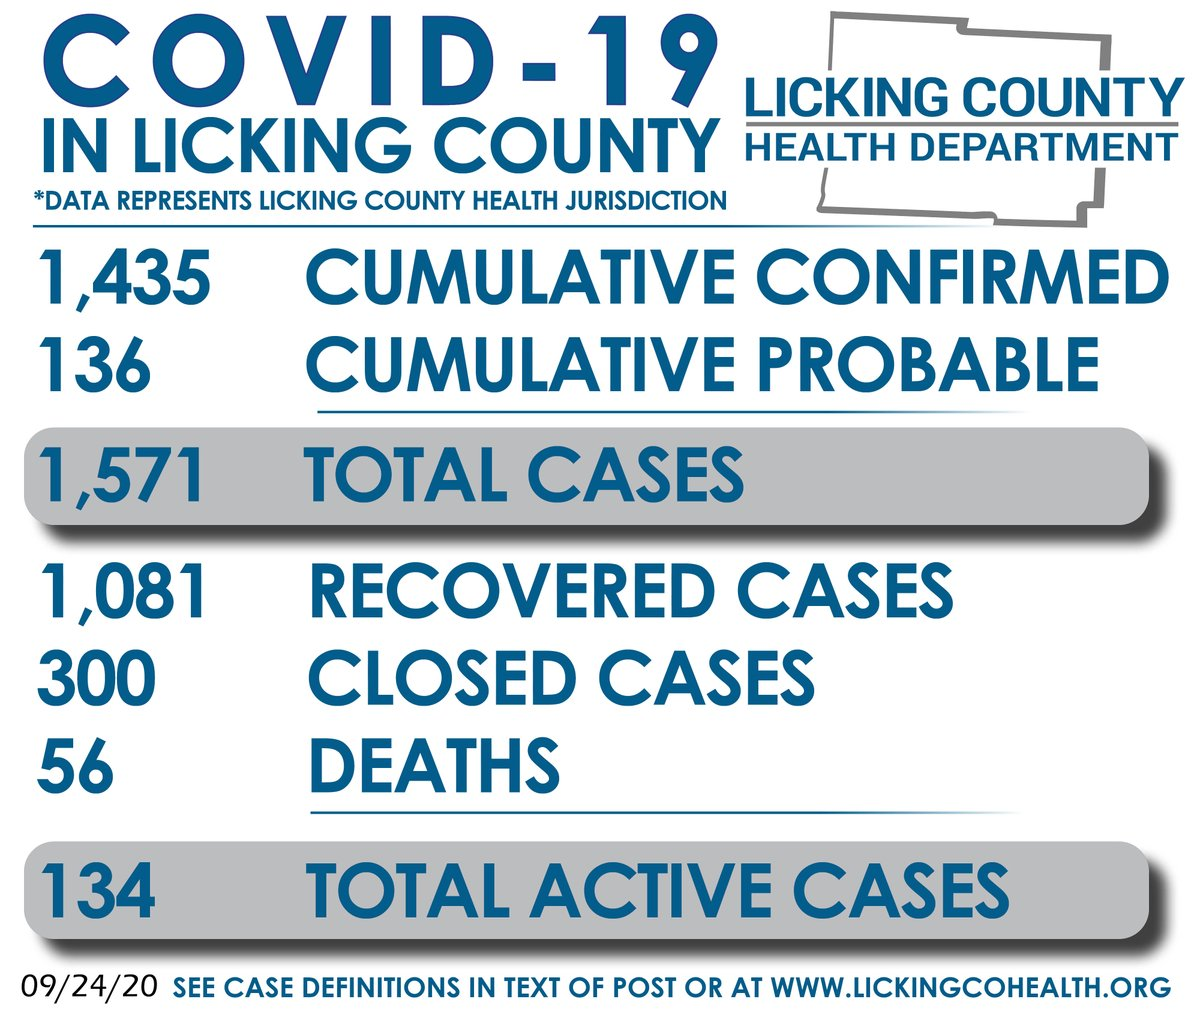 Today, LCHD is reporting 1,435 cumulative confirmed COVID-19 cases in the Licking County Health Jurisdiction. In addition, there are 136 cumulative probable cases, 1,081 recovered cases, 300 closed cases, & 56 COVID deaths. There are 134 total active cases today. Yesterday: 124.